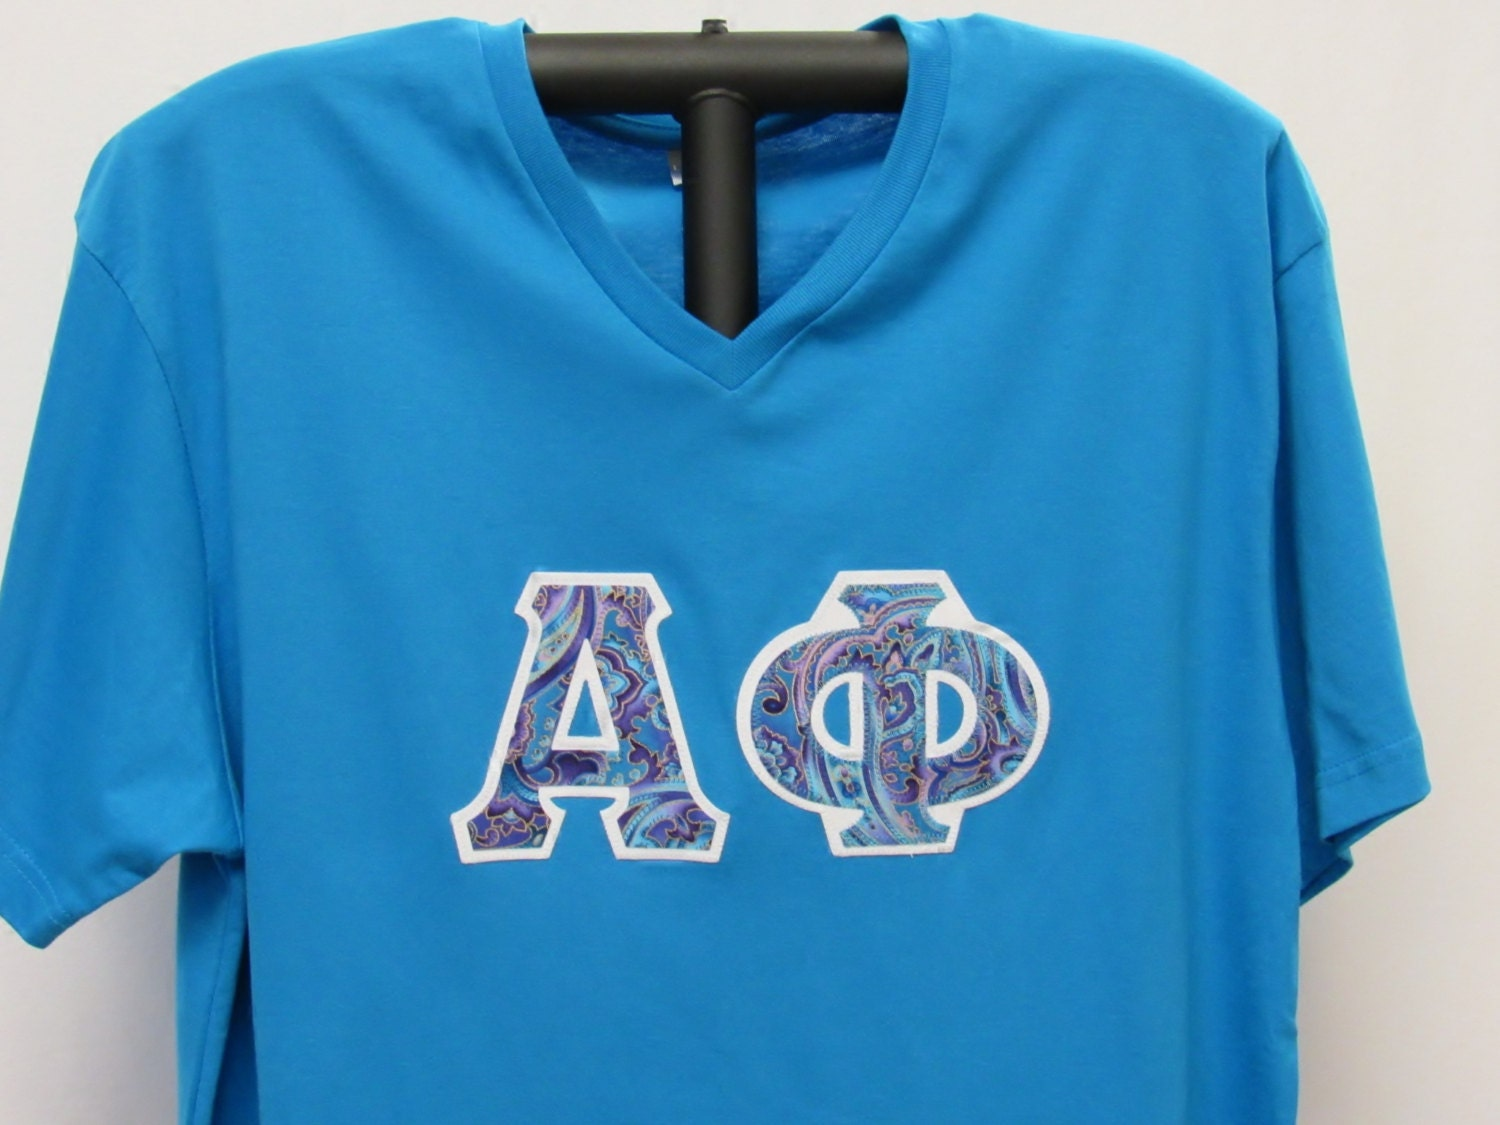 sorority letter shirts sorority letter shirt sapphire blue sorority stitched 24923 | il fullxfull.975520614 f5bn